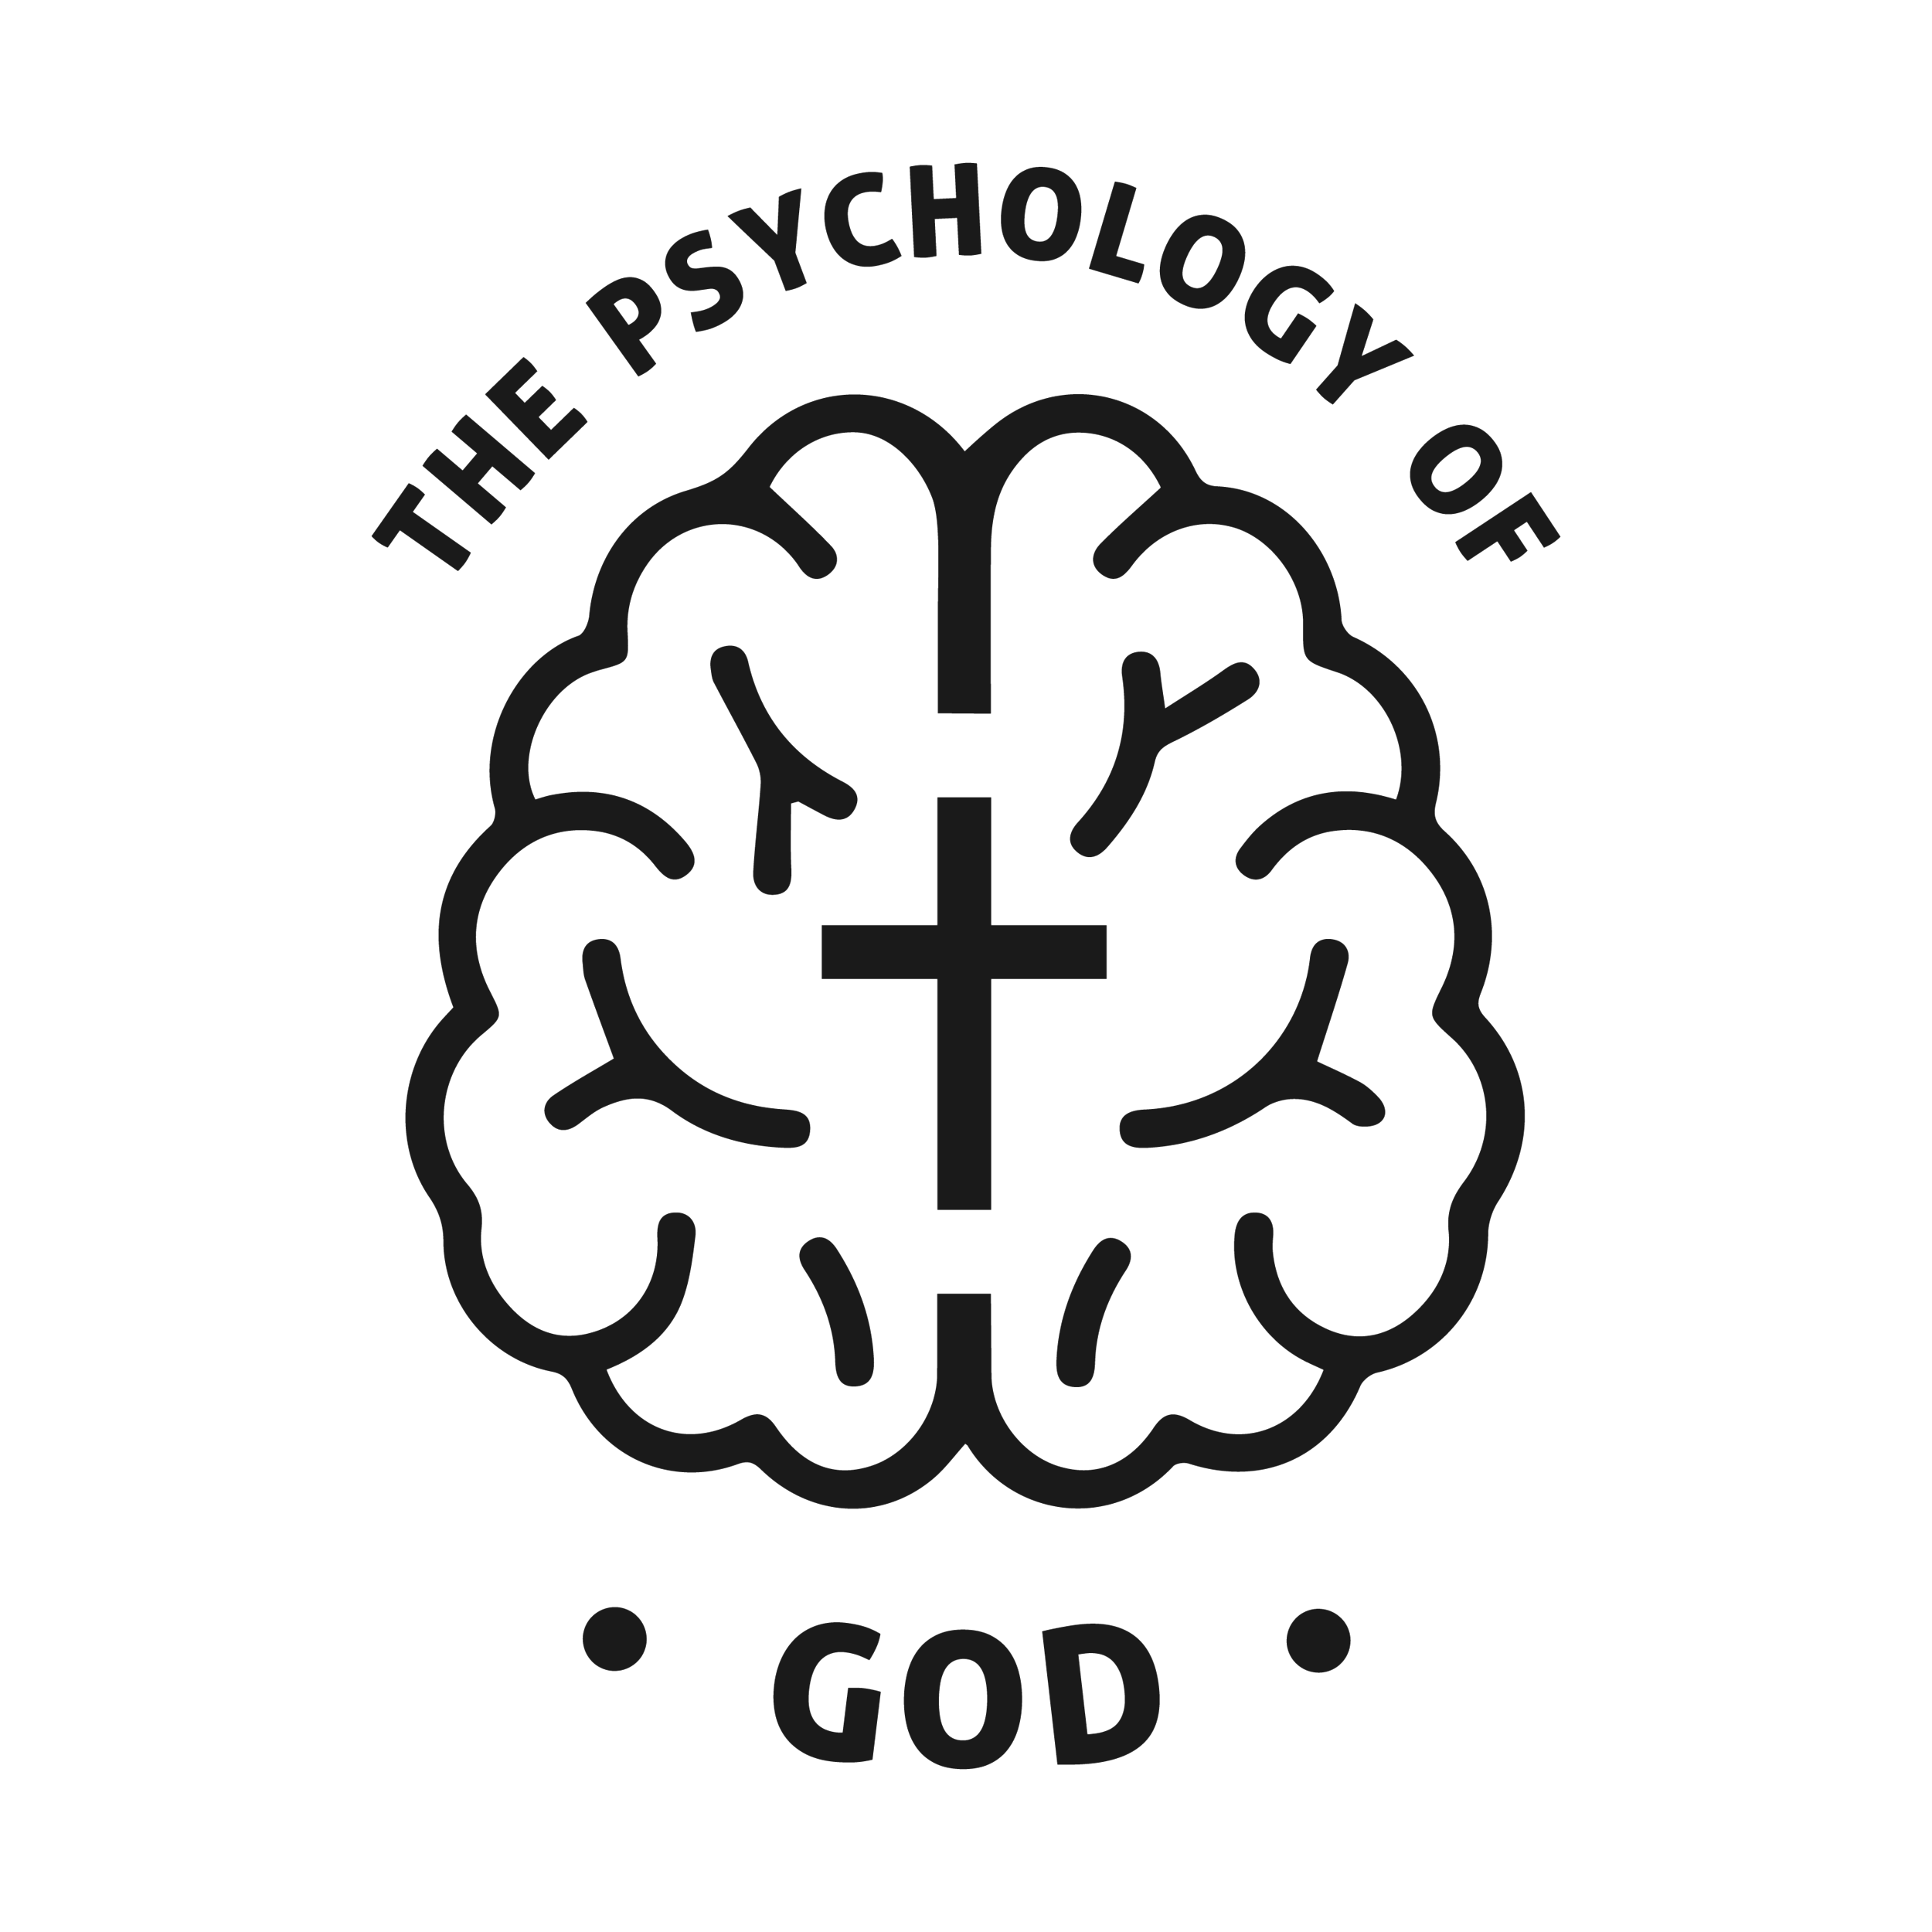 the-psychology-of-god-3000x3000-B.png